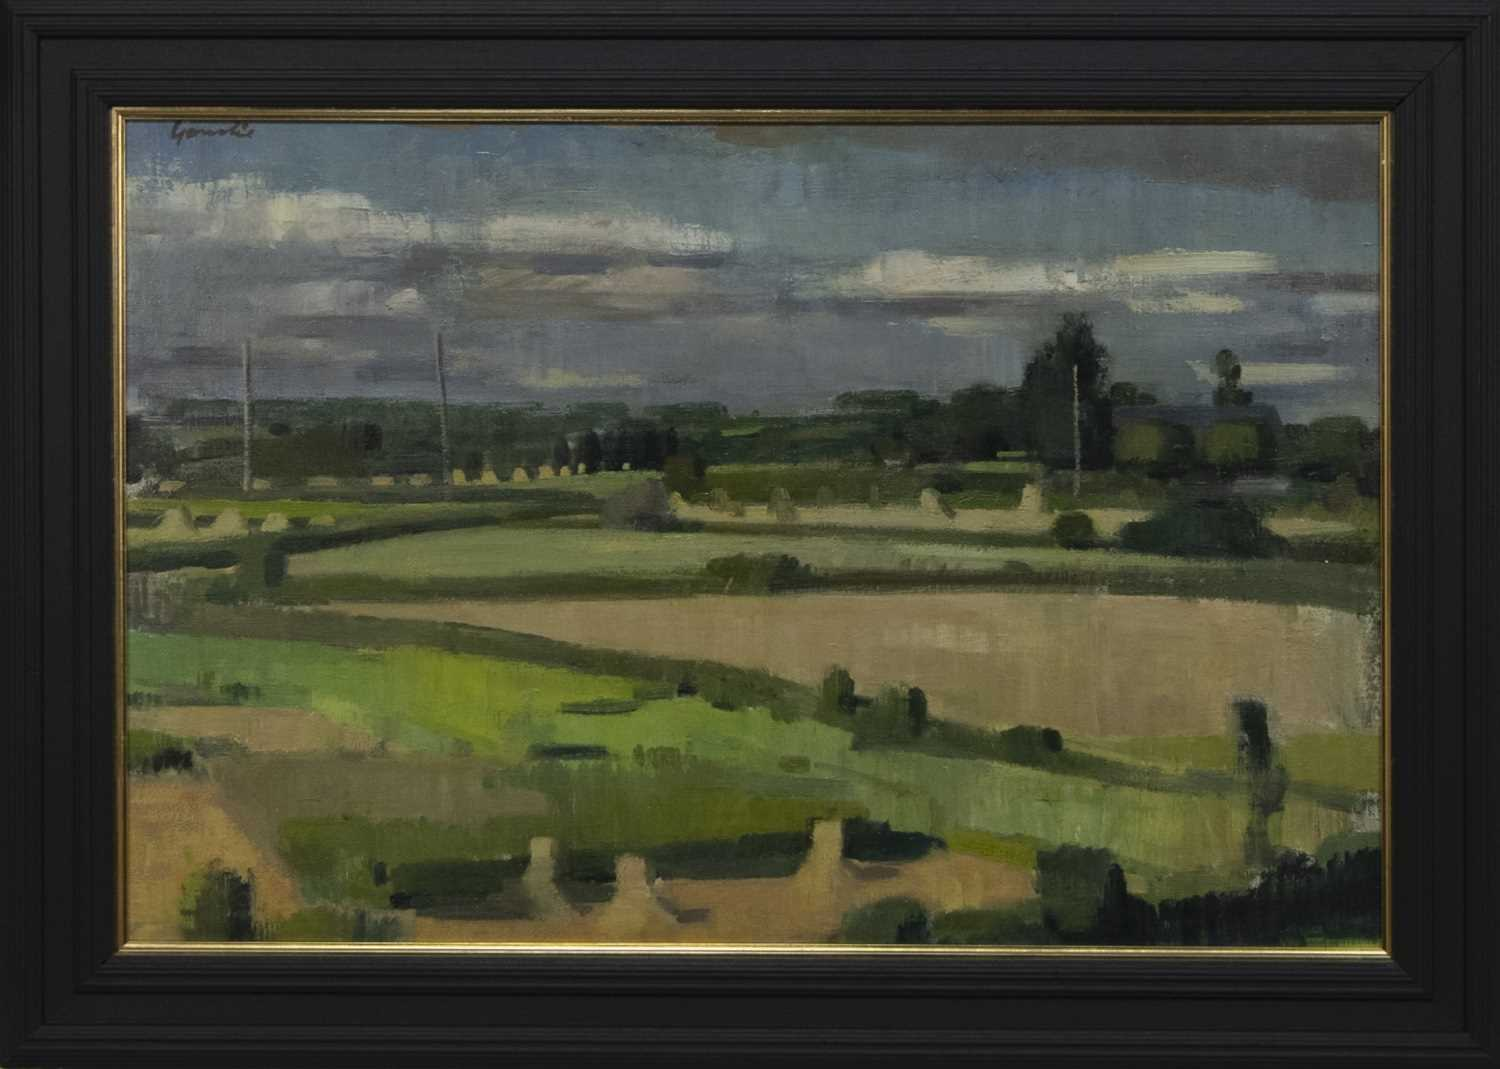 Lot 512 - BRITTANY LANDSCAPE, AN OIL BY ALEXANDER GOUDIE